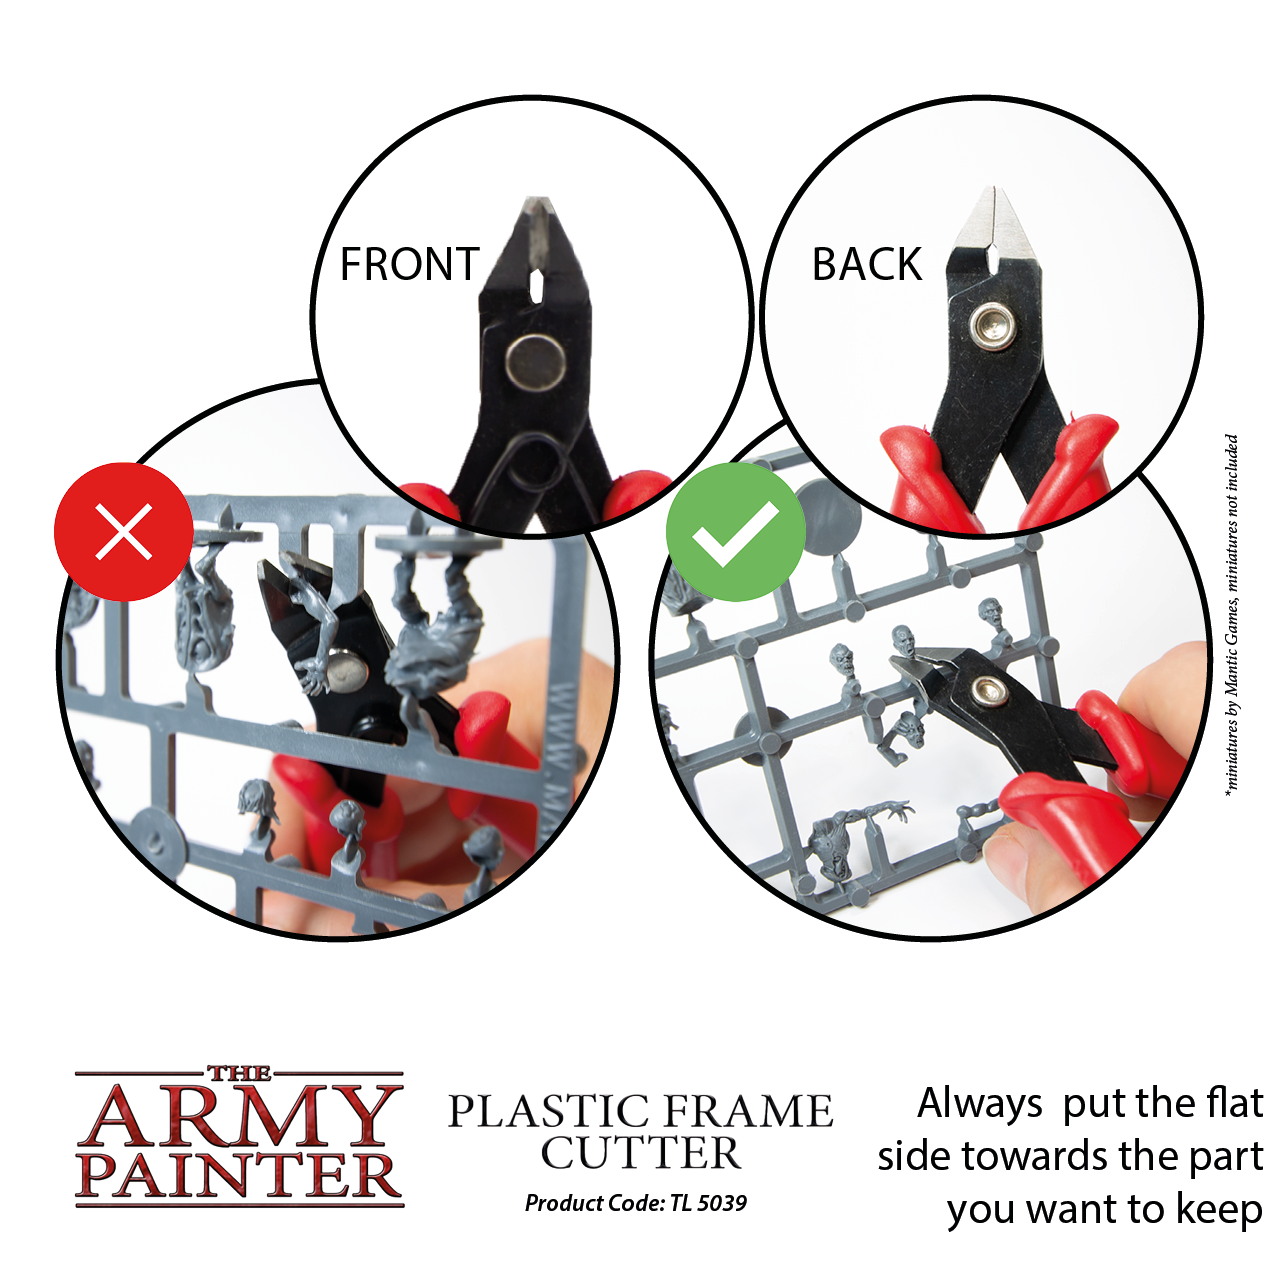 Army Painter Plastic Frame Cutter